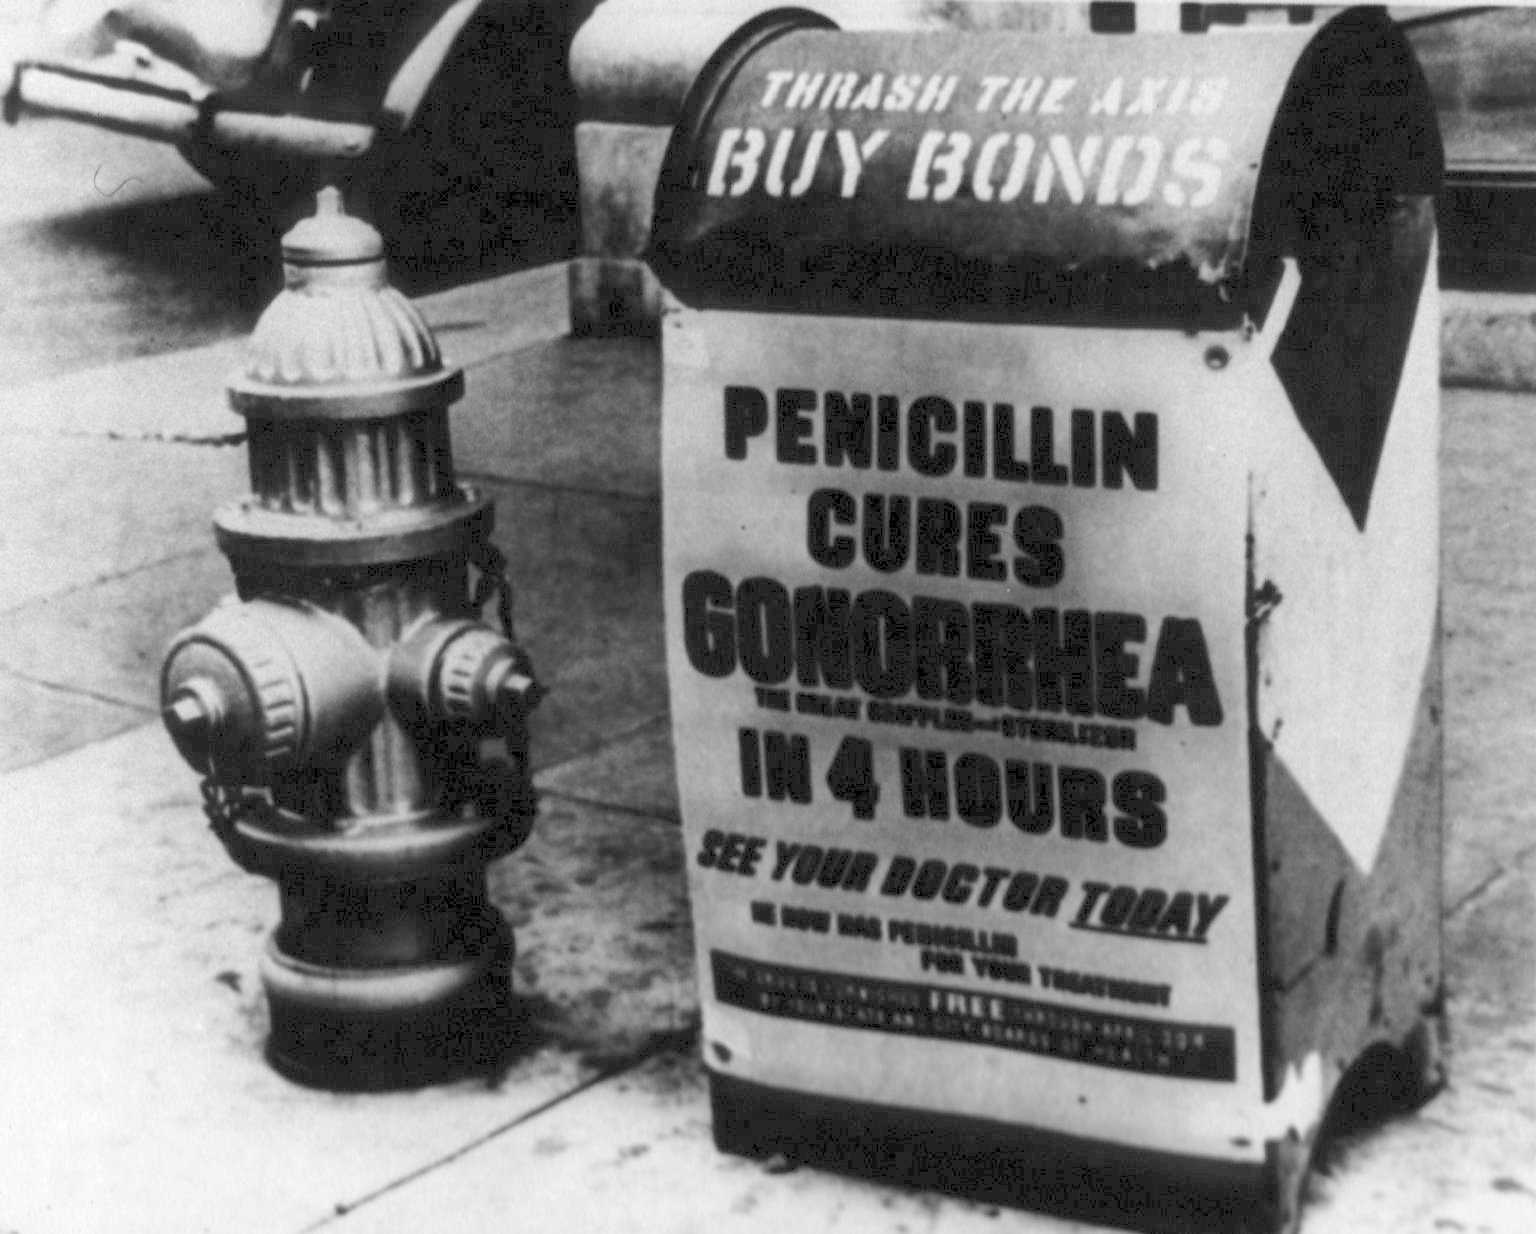 Is Penicillin as Important Today as When It Was First Discovered? - WriteWork